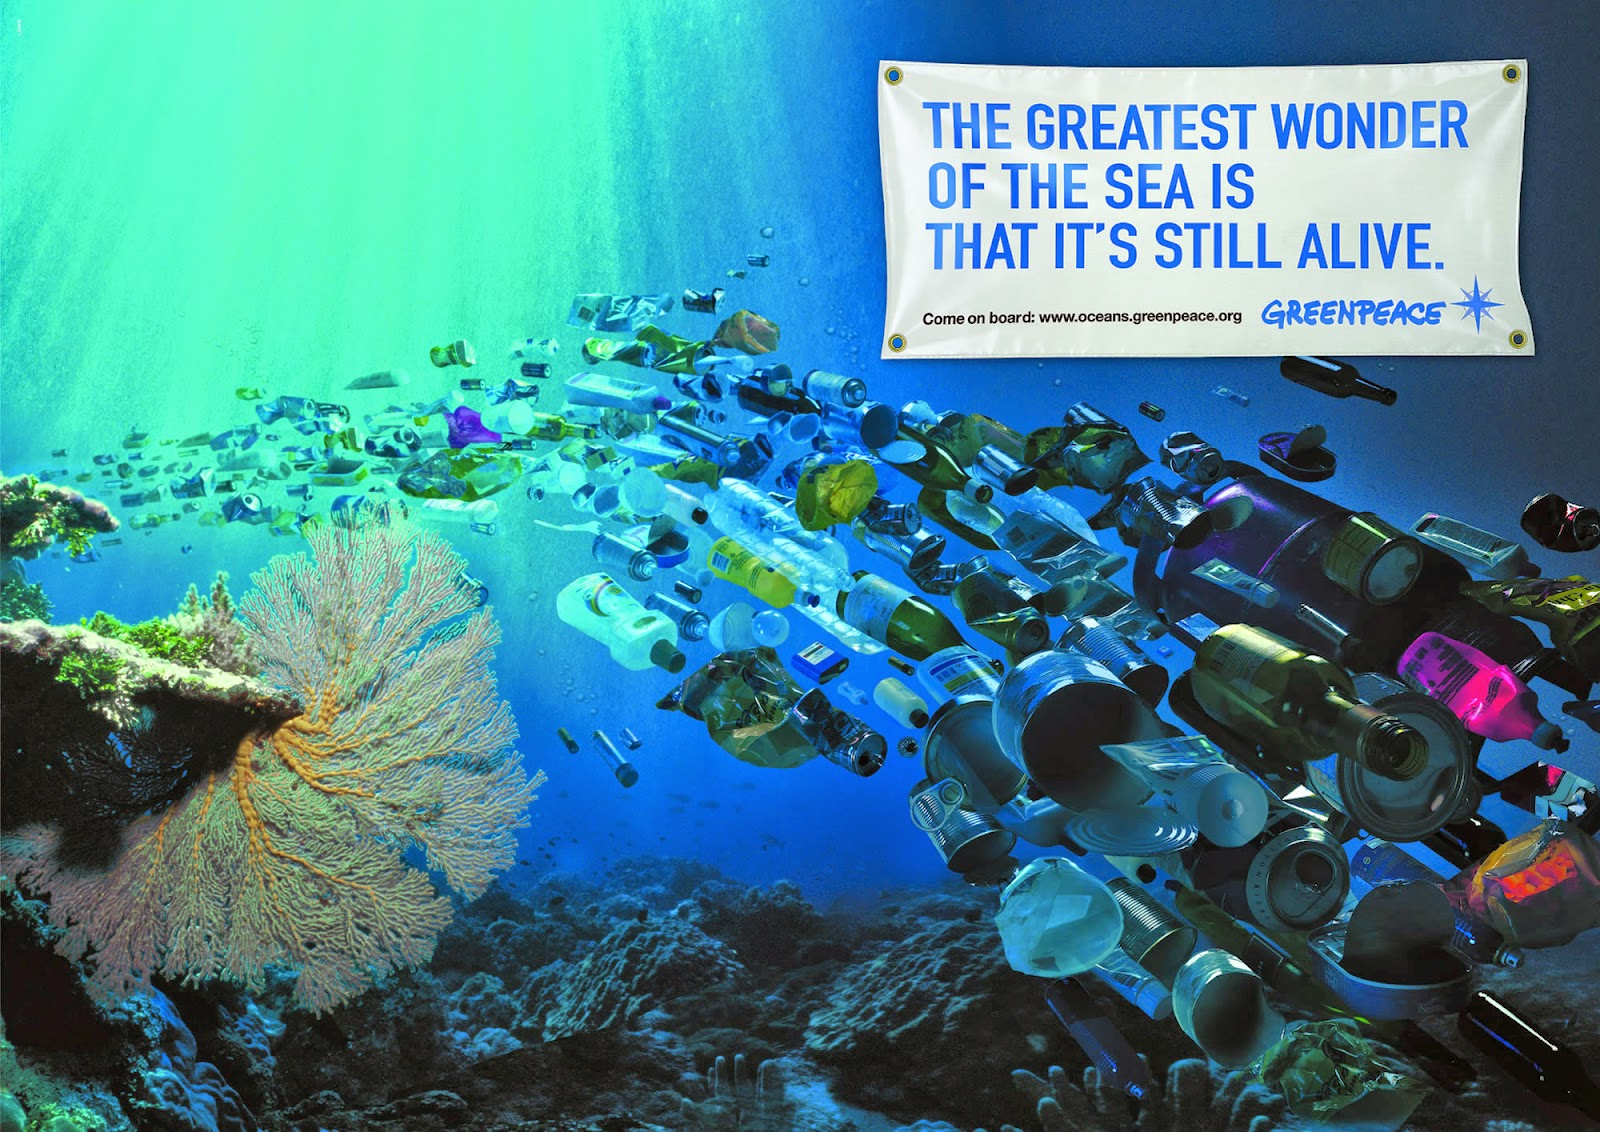 water pollution impacts on the environment  greenpeace advert